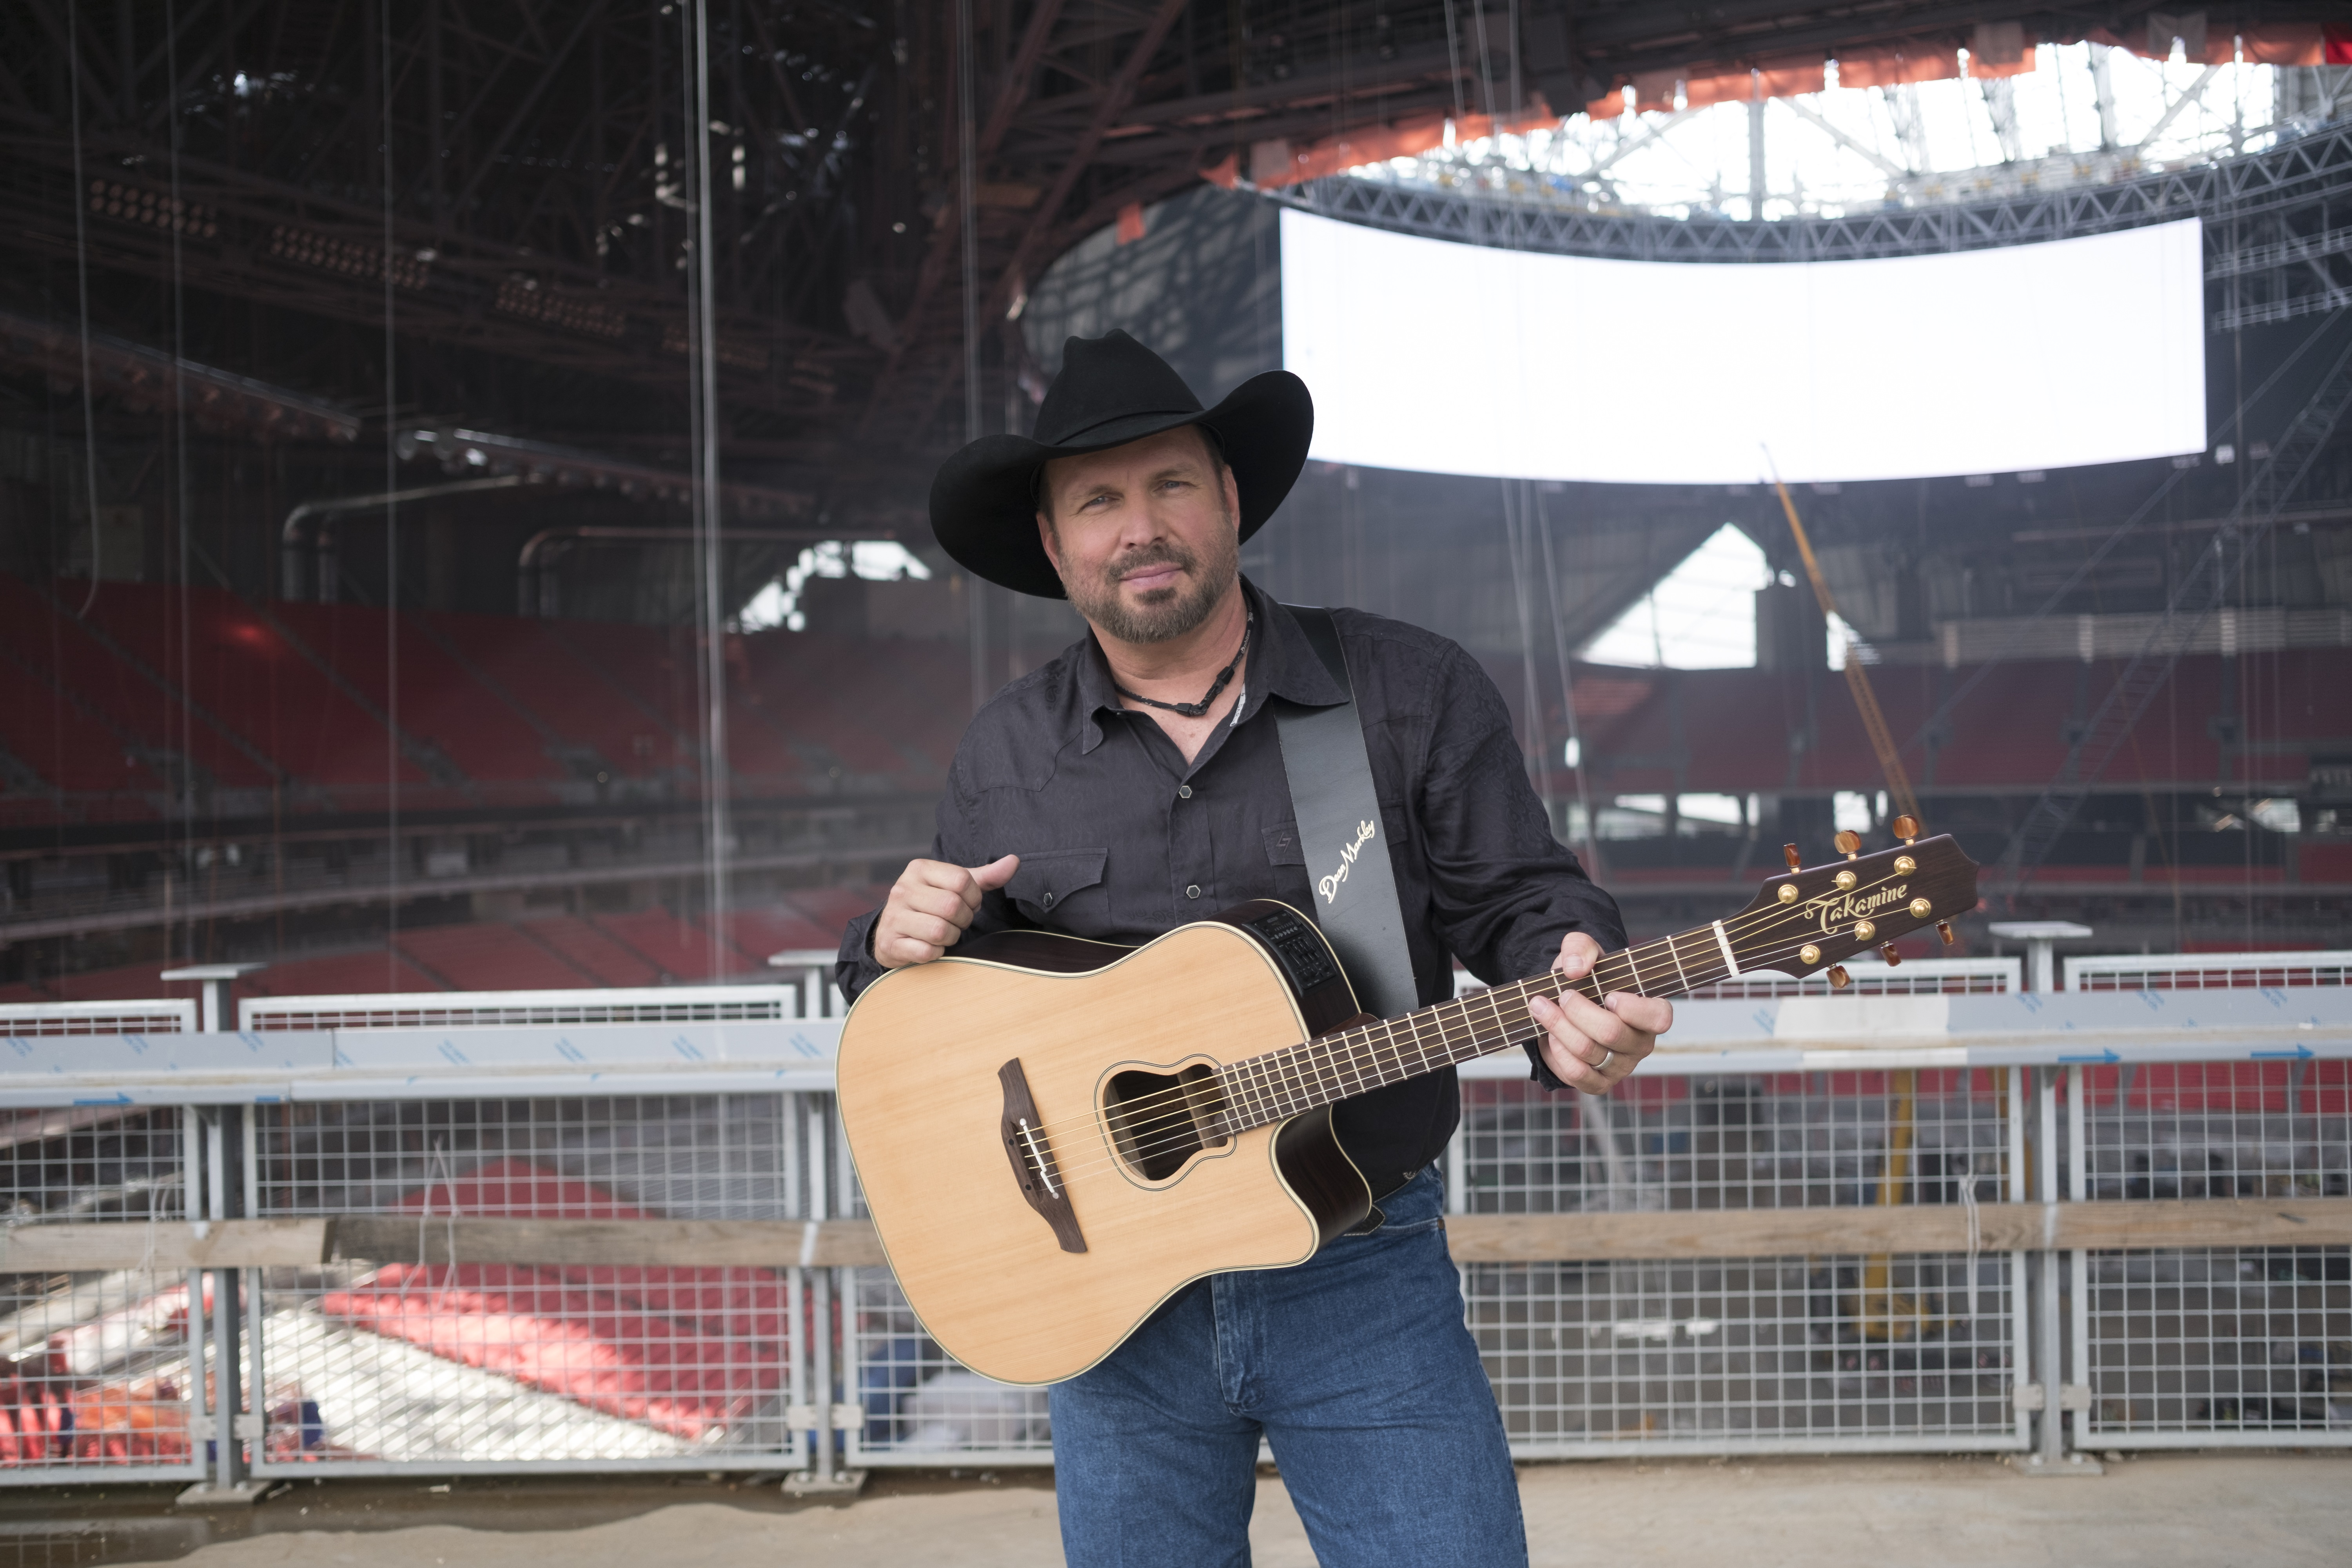 Garth Brooks to Headline the First-Ever Concert in Notre Dame's Stadium